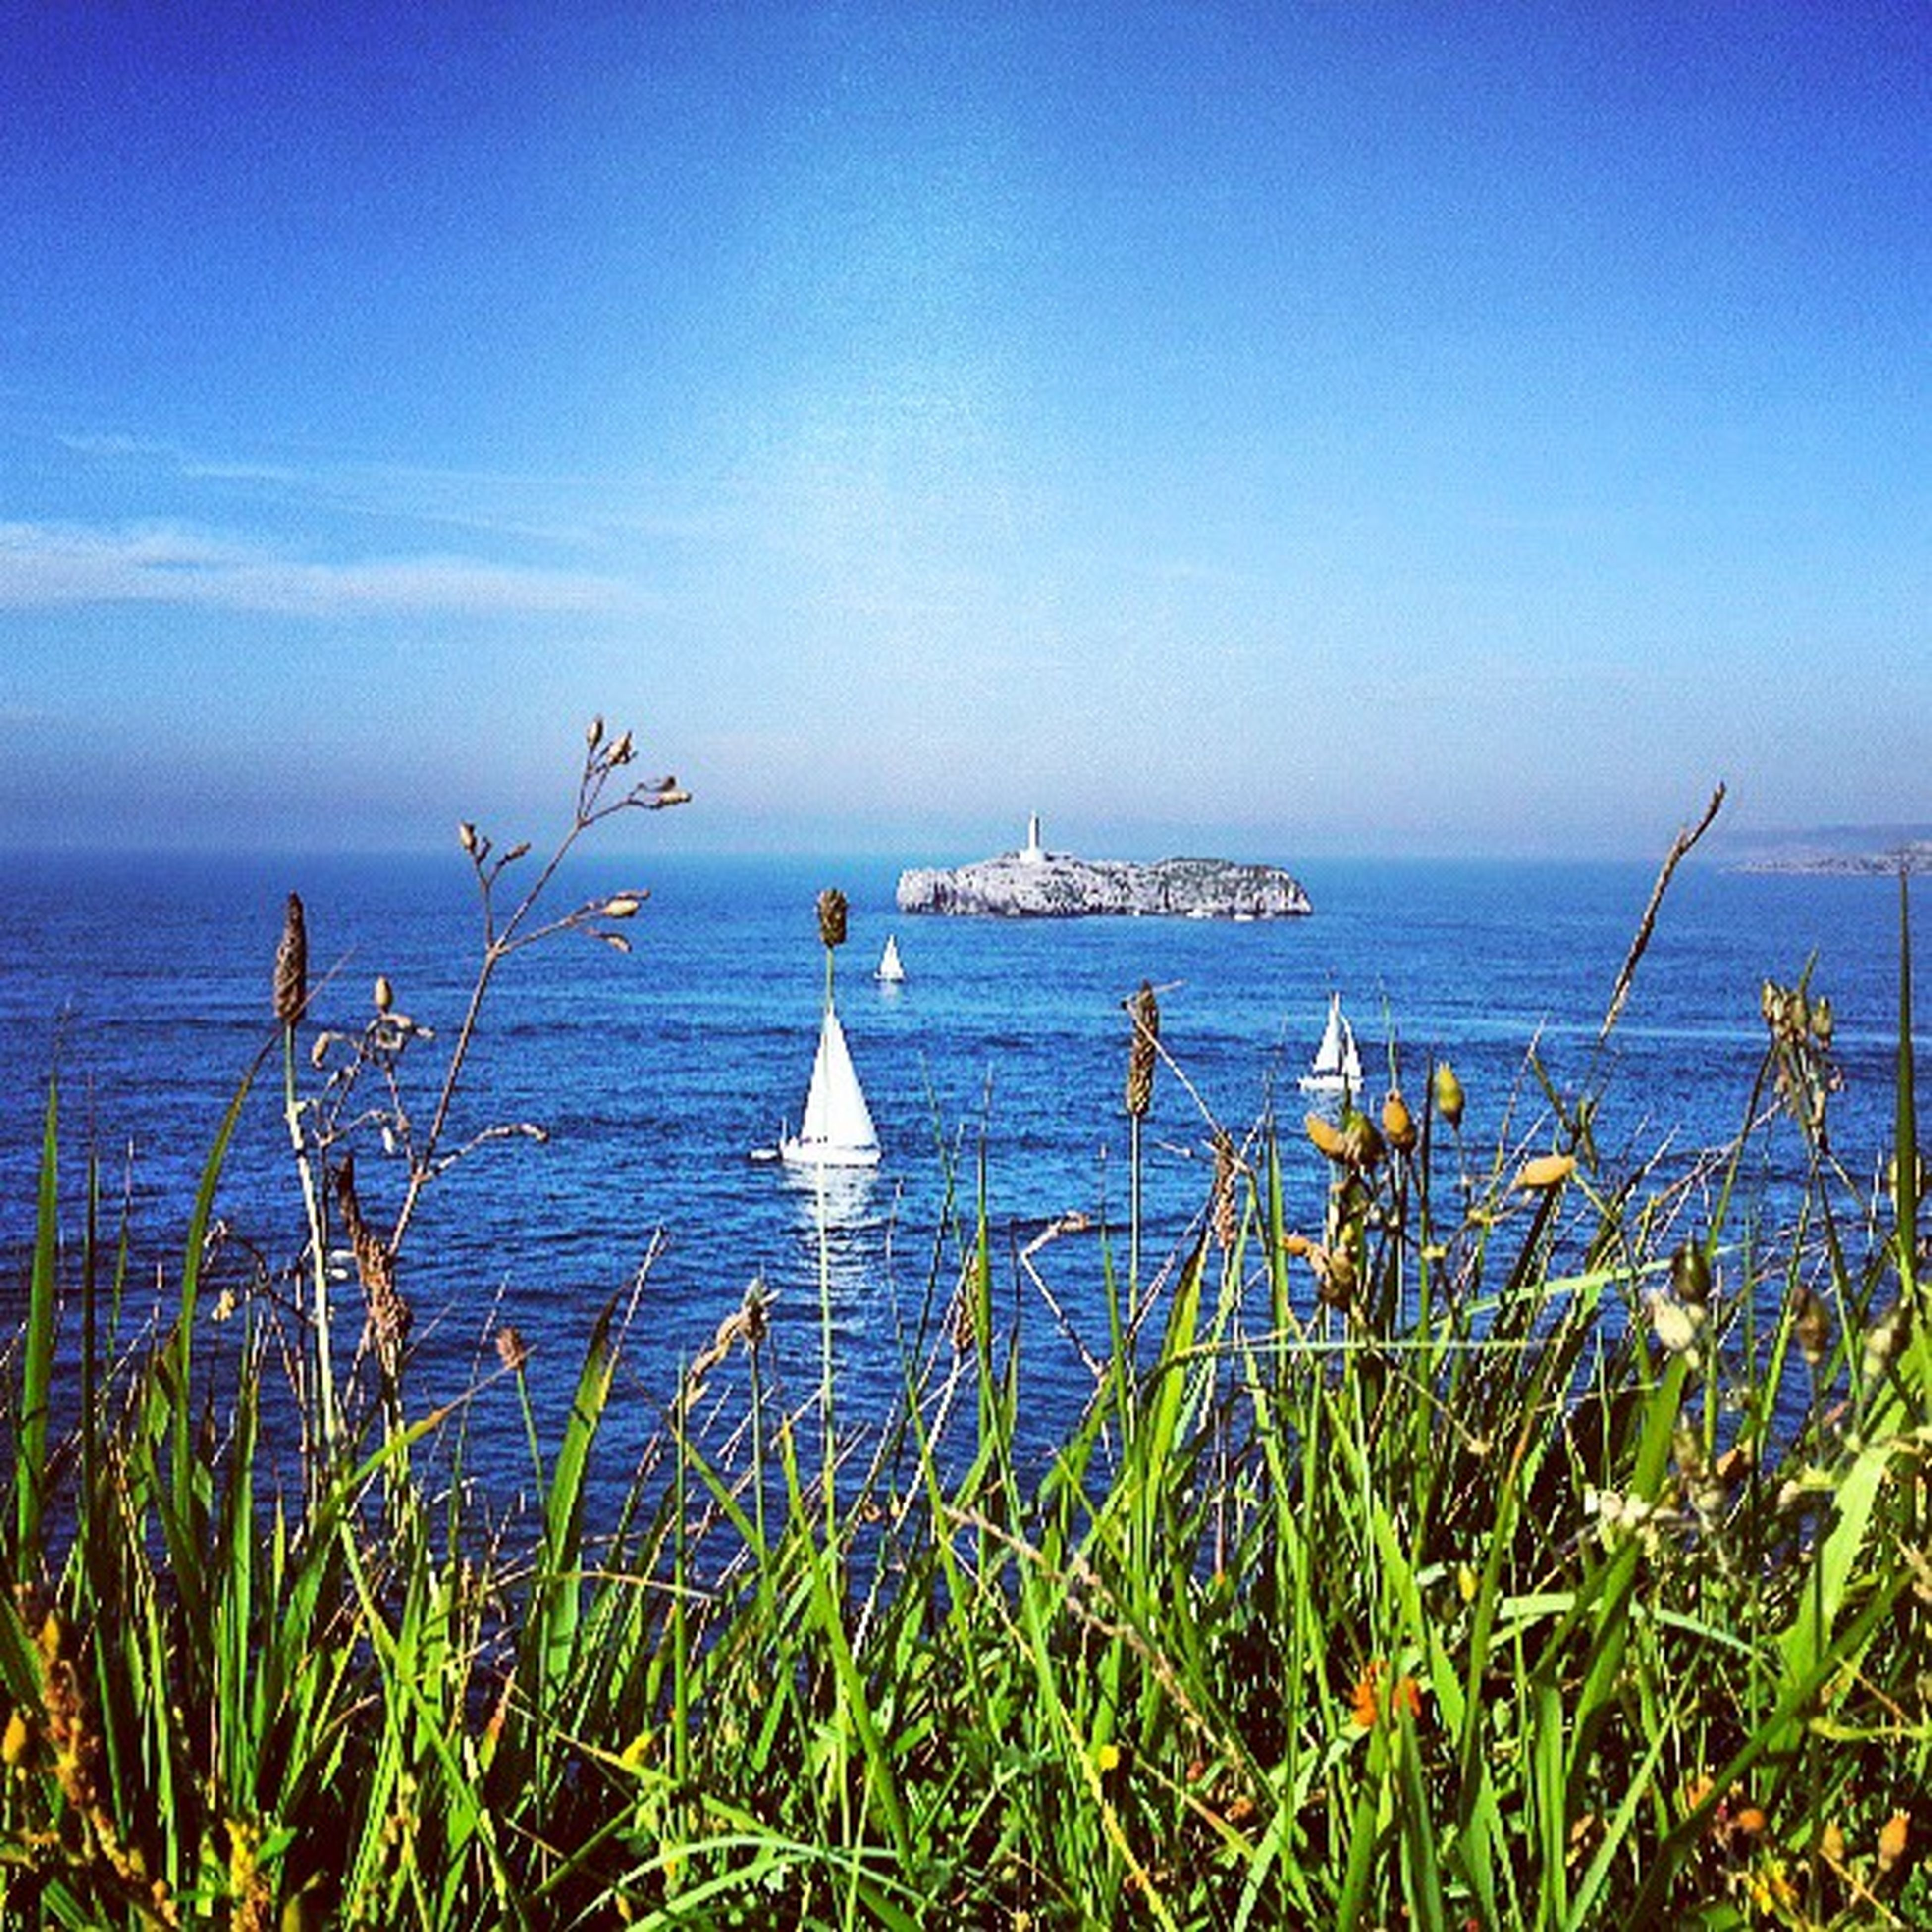 water, sea, blue, horizon over water, tranquil scene, tranquility, grass, beauty in nature, plant, scenics, nature, sky, growth, clear sky, idyllic, day, copy space, outdoors, no people, non-urban scene